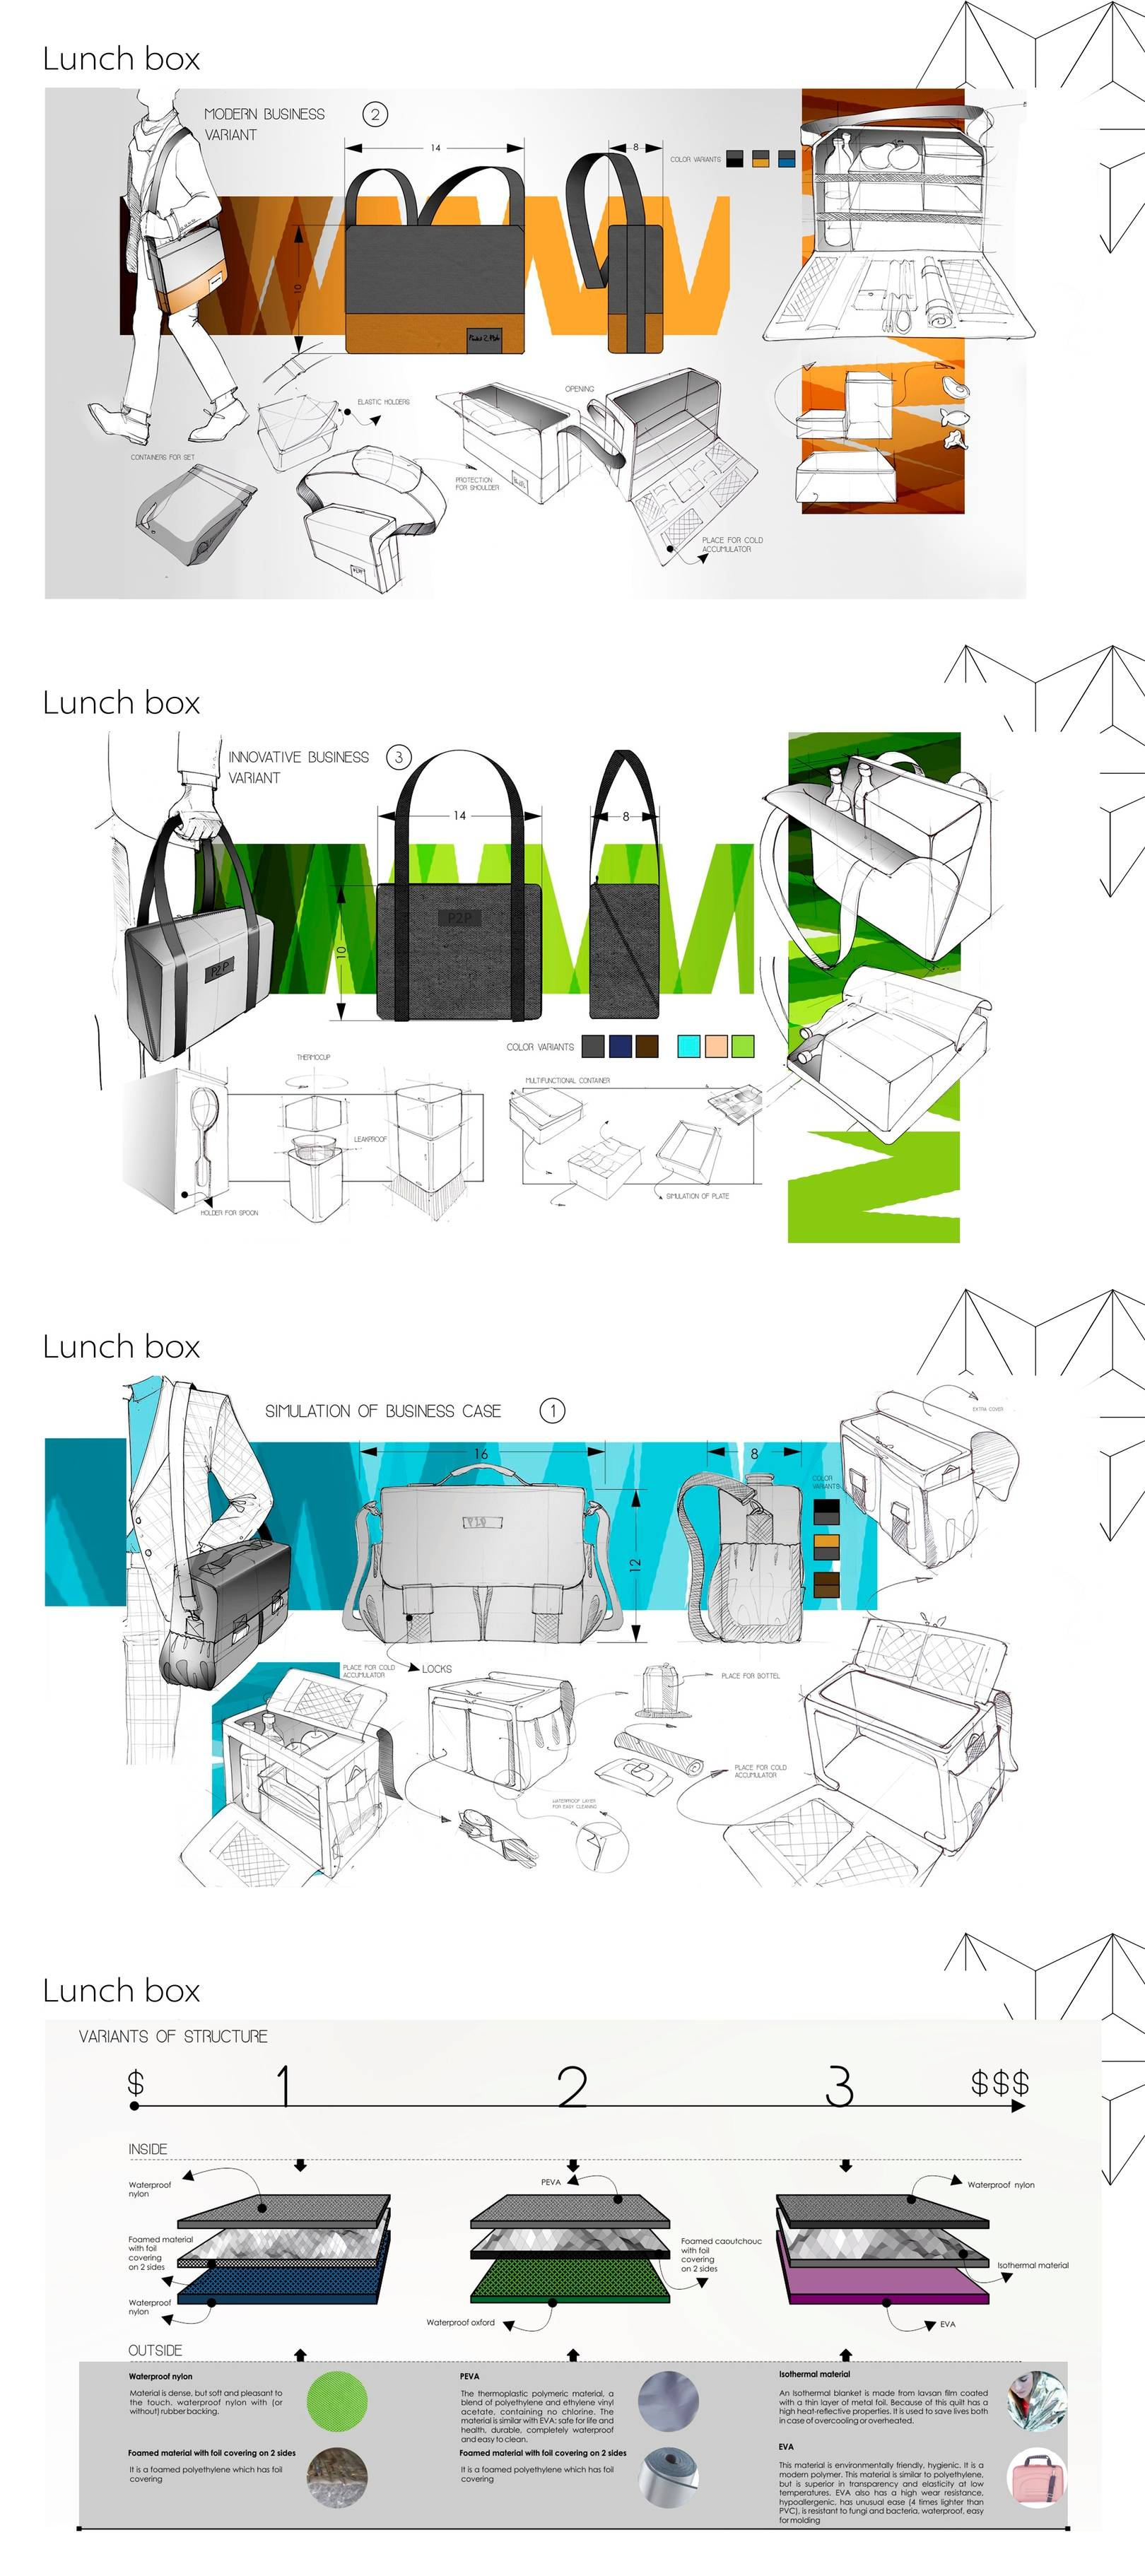 Lunch box for Place2pocket kompany for Miami, USA